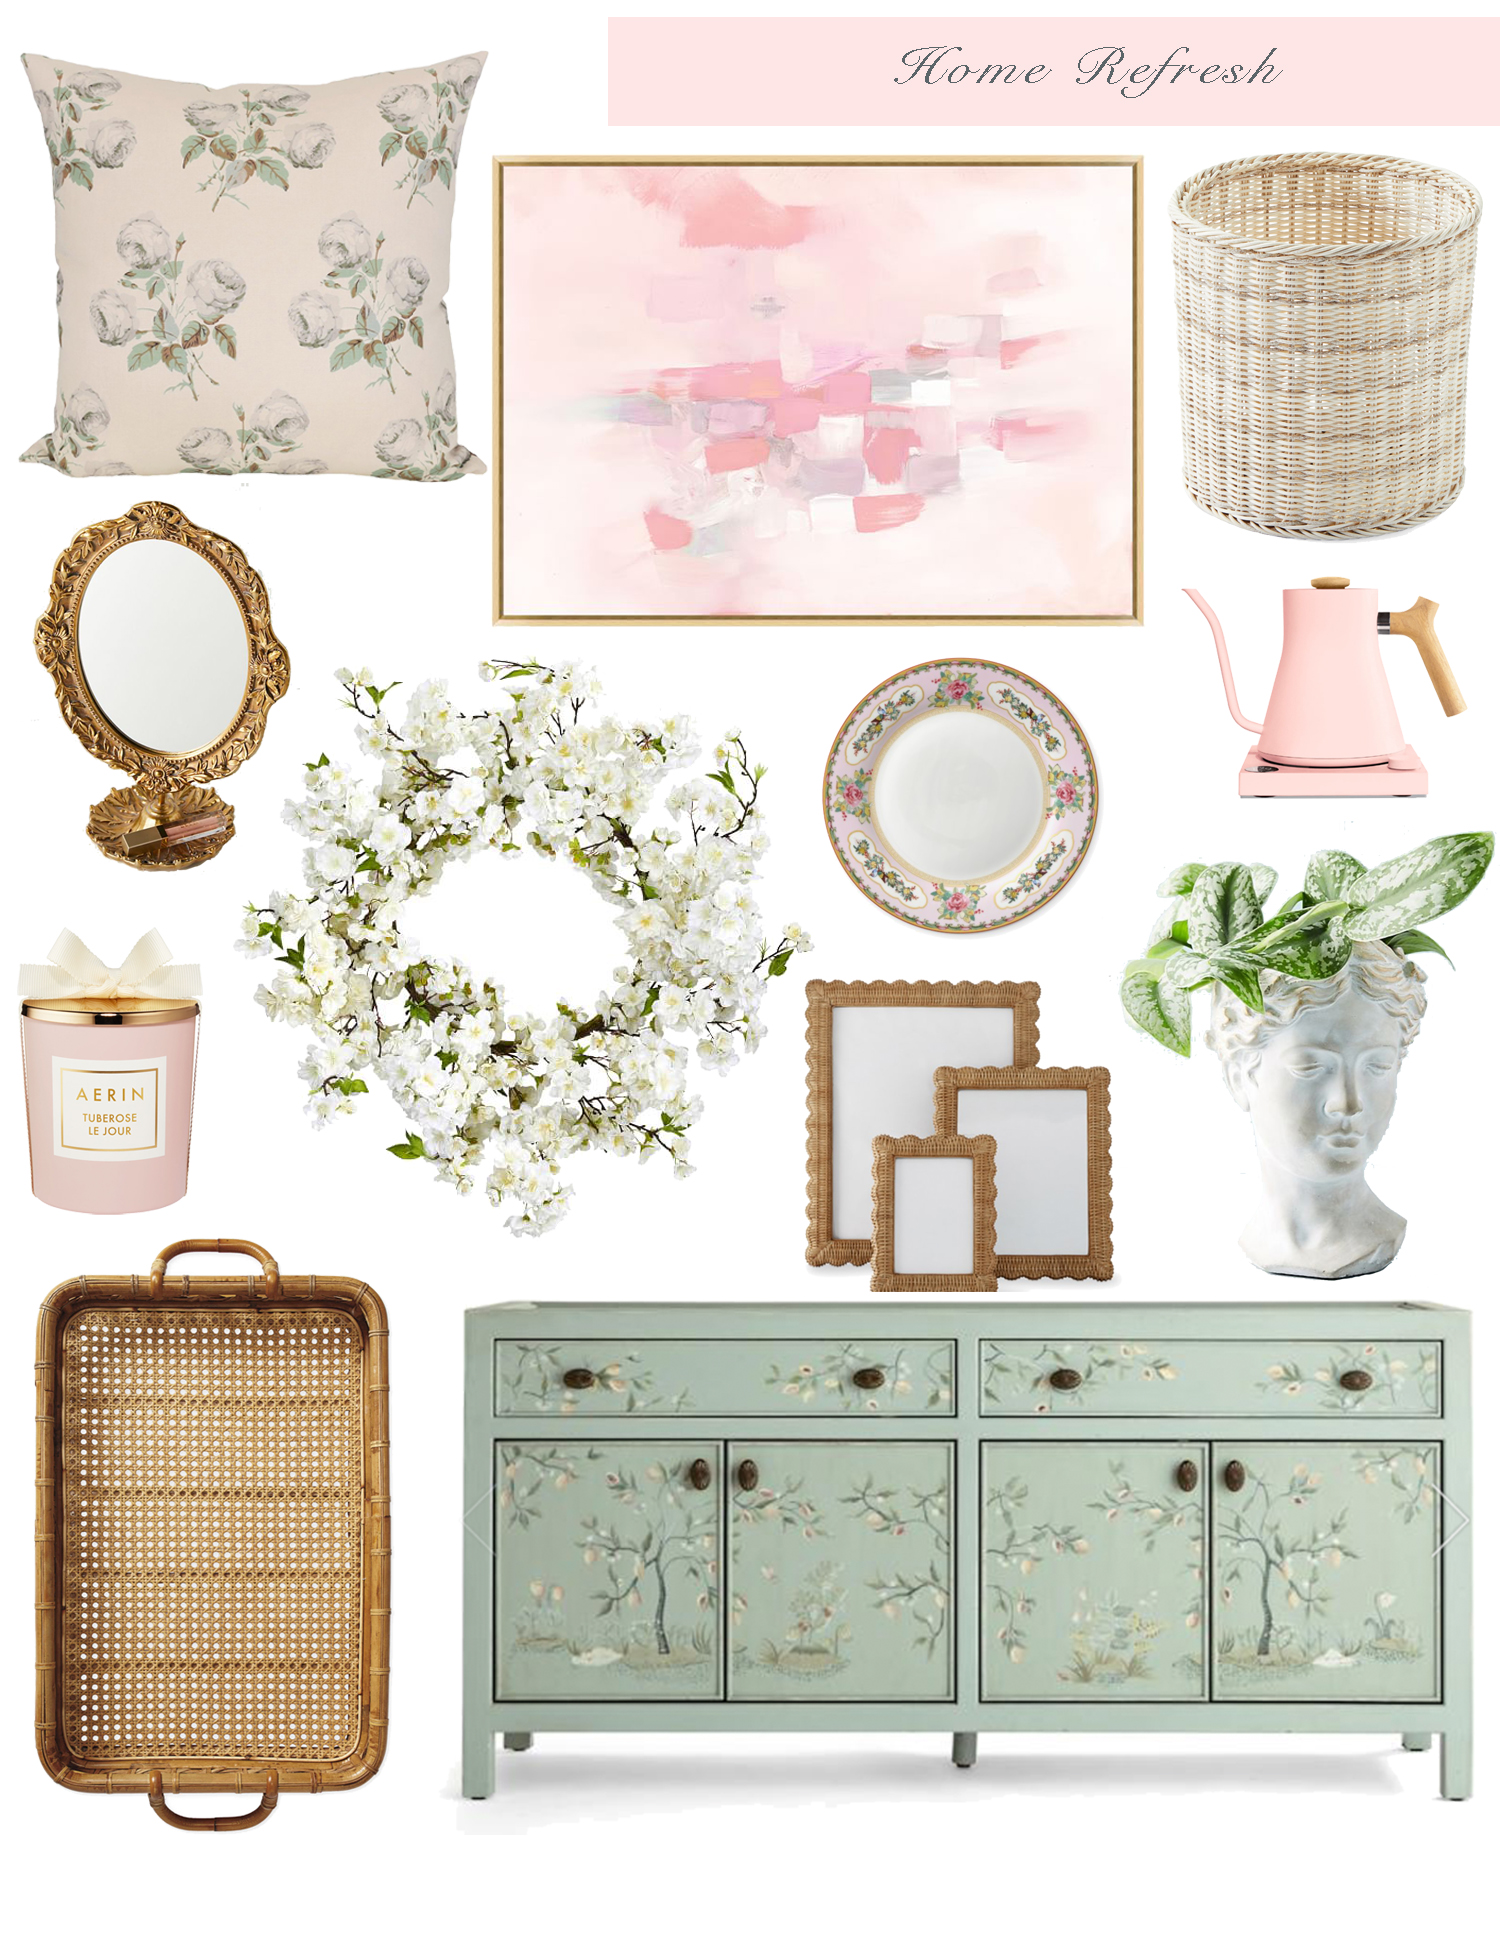 pink-and-green-home-refresh-home-decor-floral-interiors